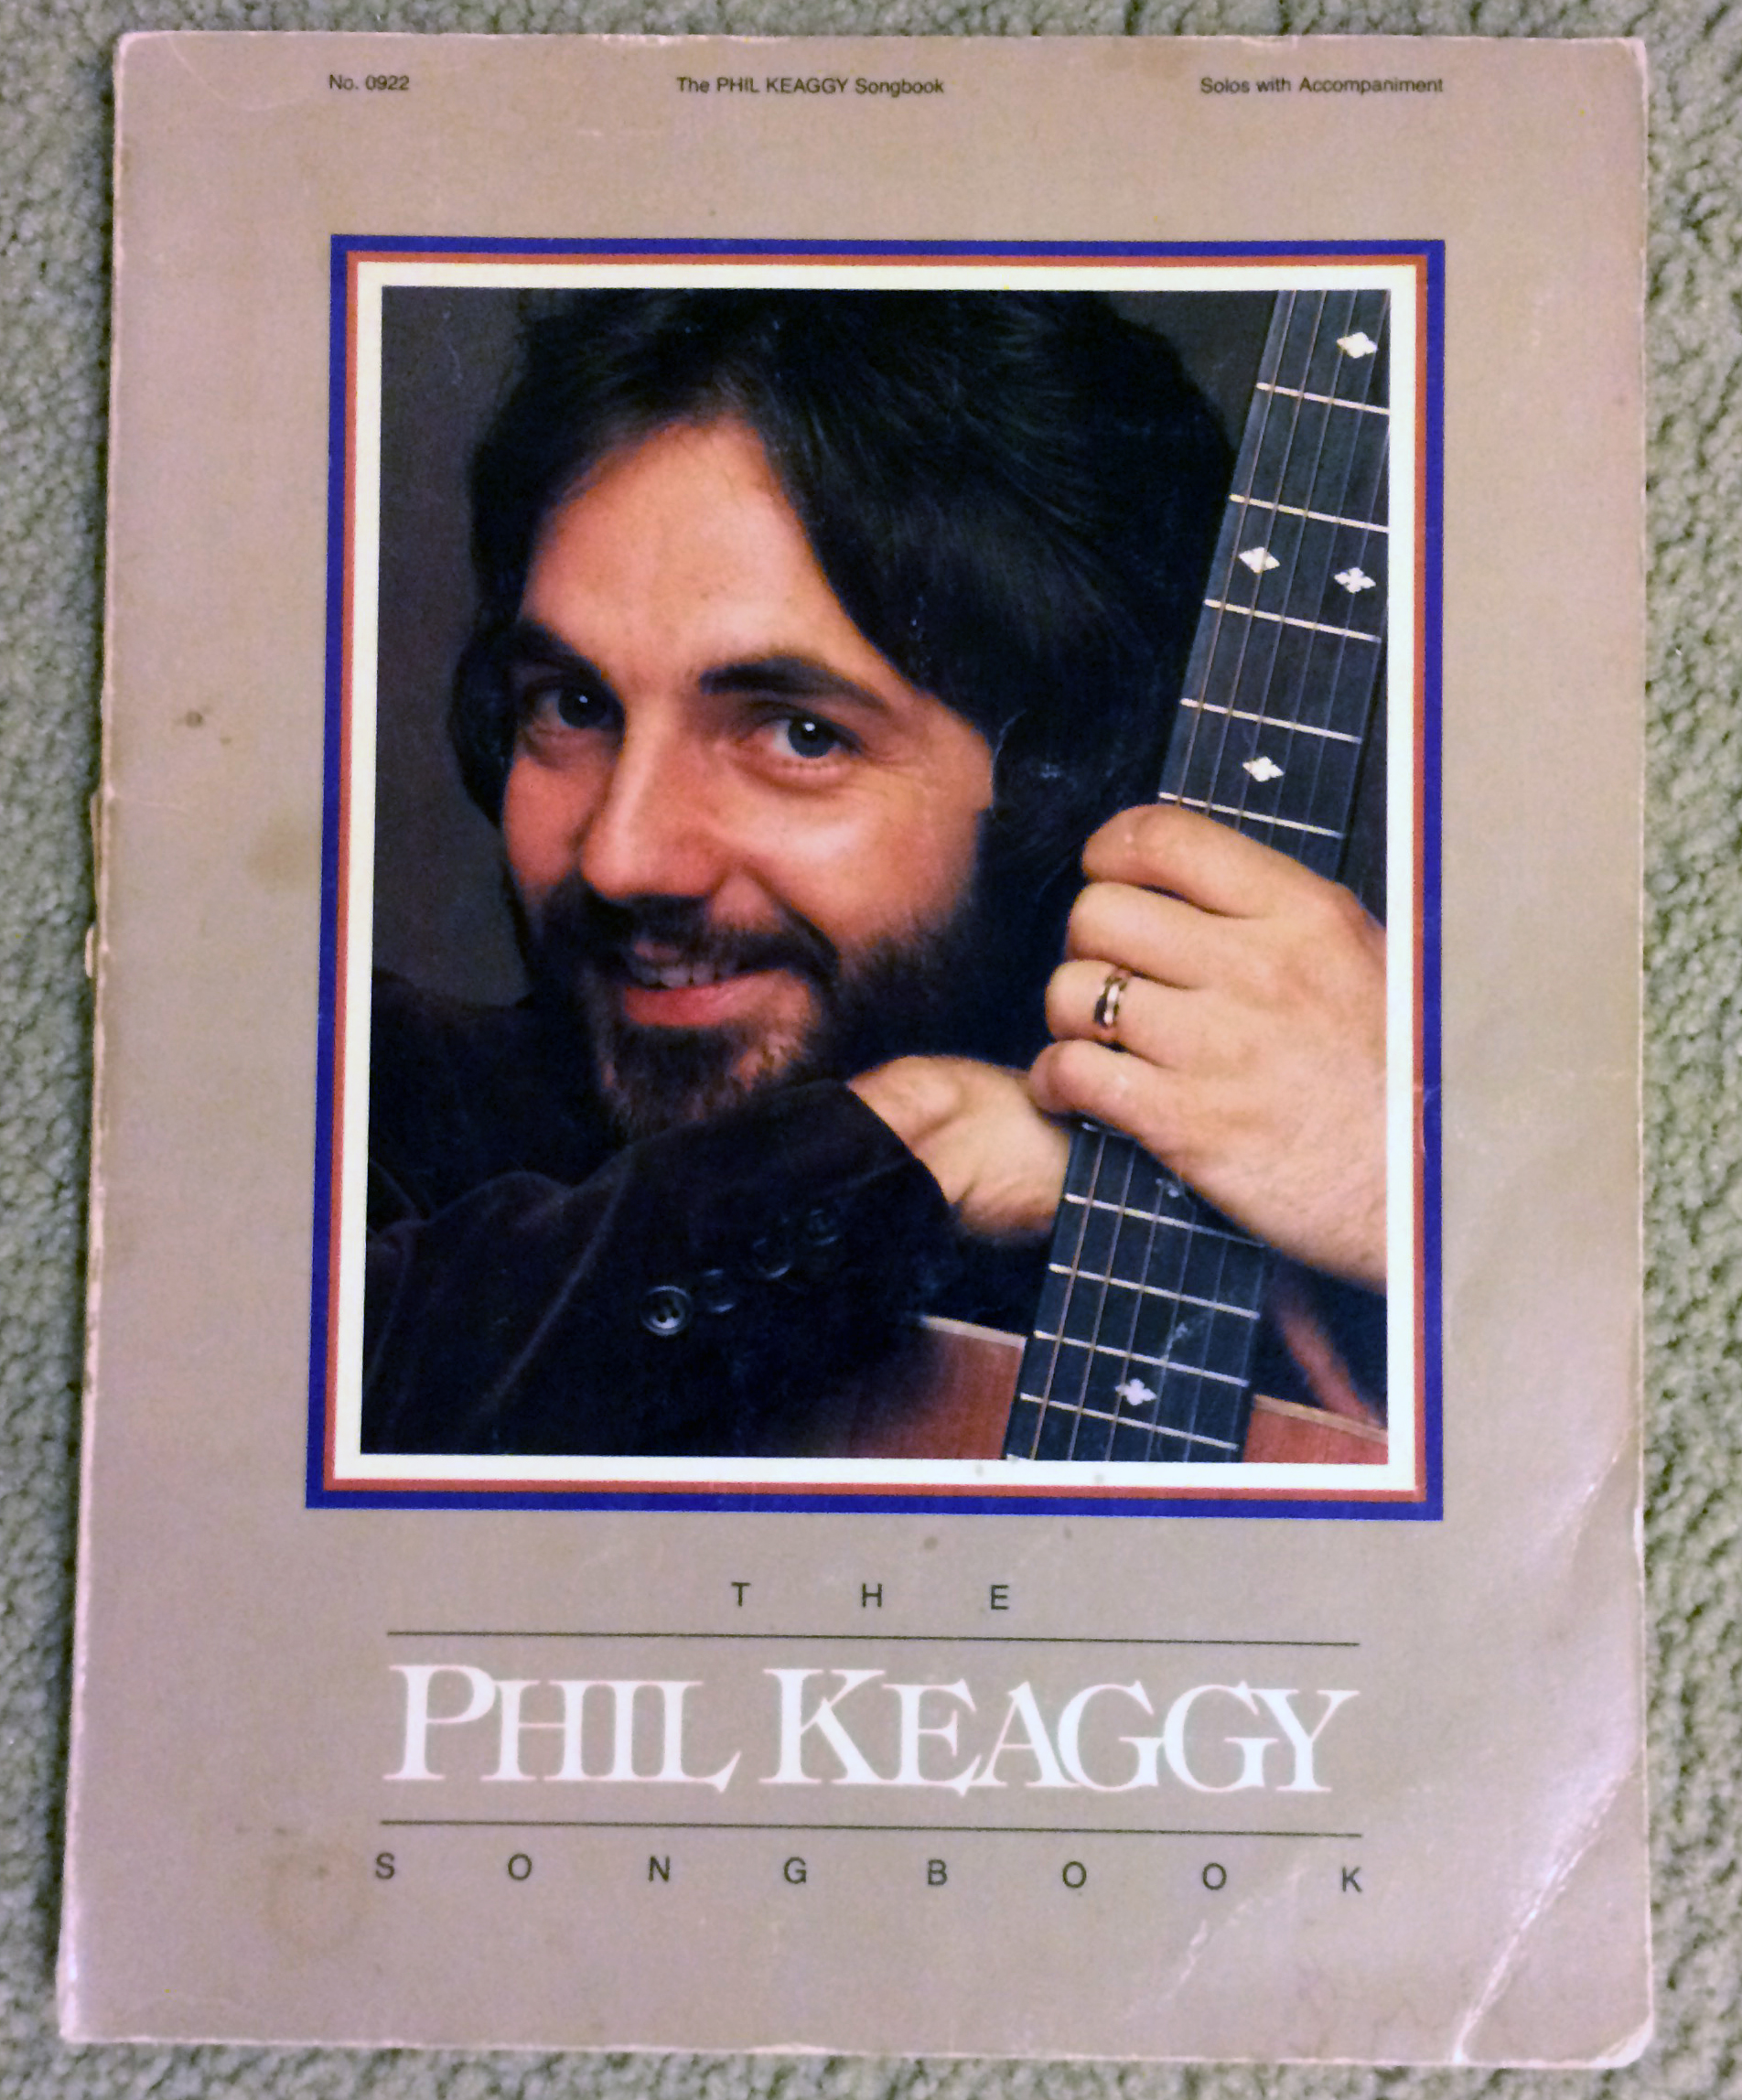 One of the finest guitarists ever, Phil Keaggy, had a songbook that featured solos in standard notation.